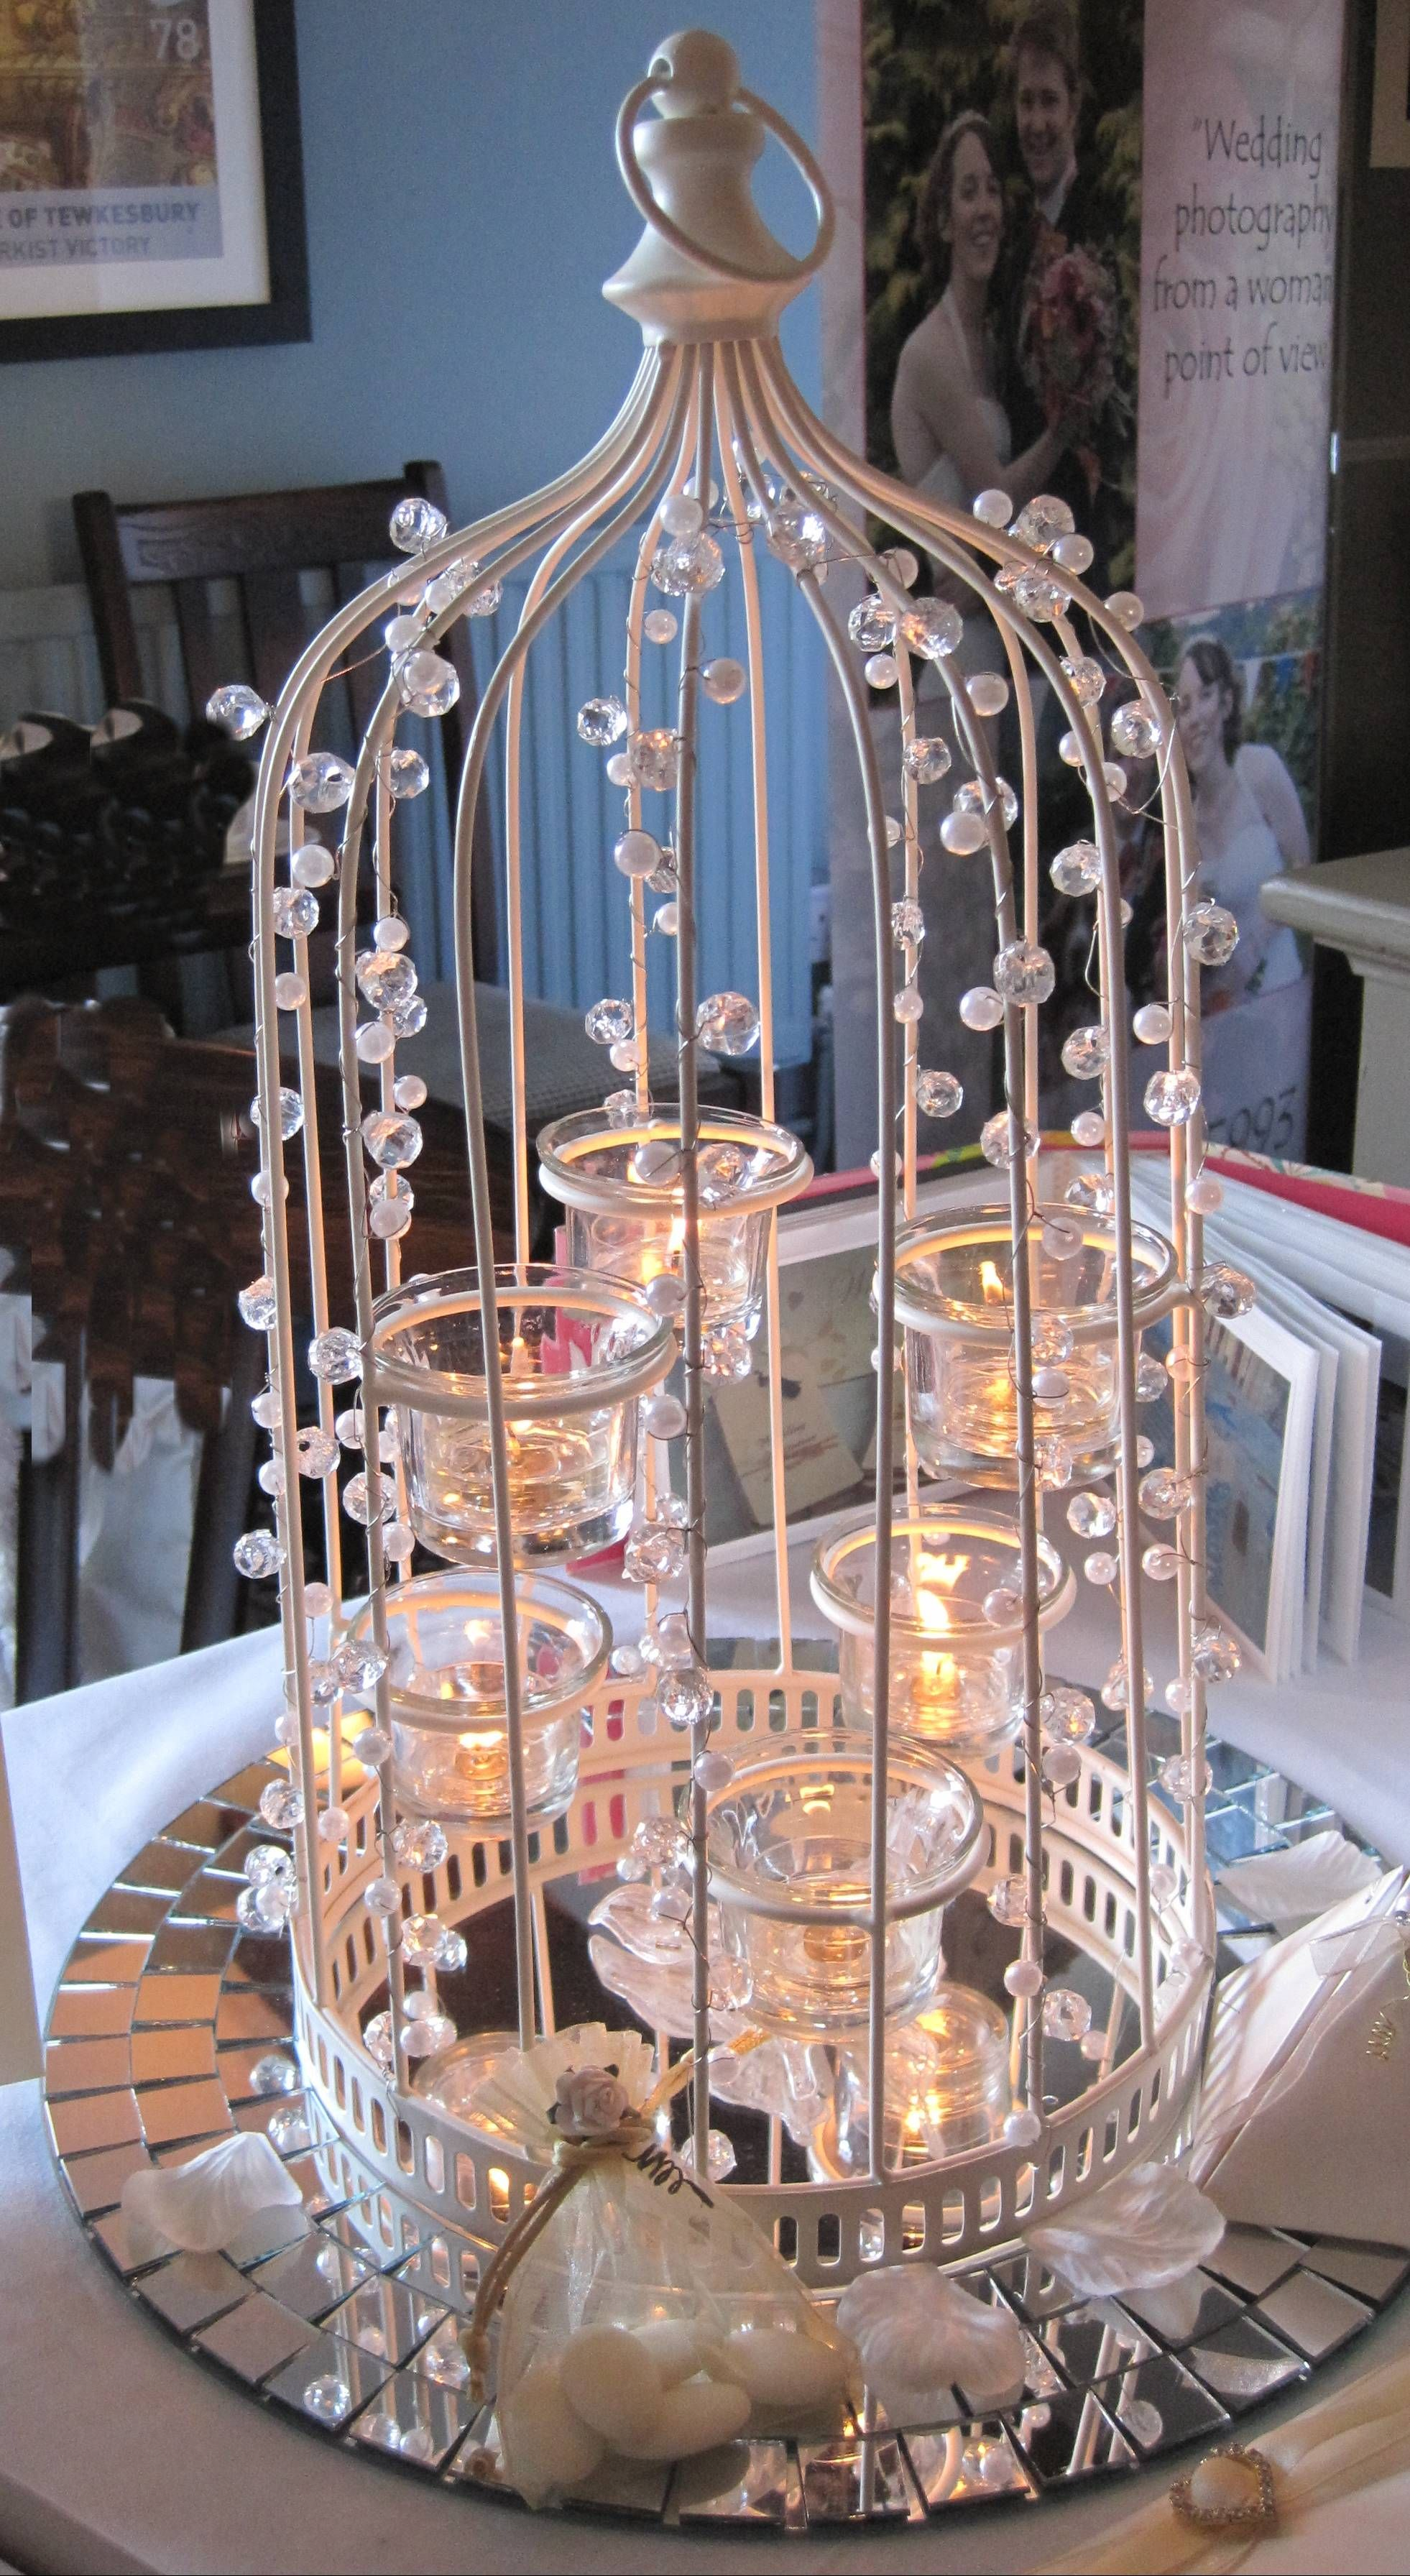 Beautiful Birdcage Centrepiece Bird Cage Ideas Wedding Themes